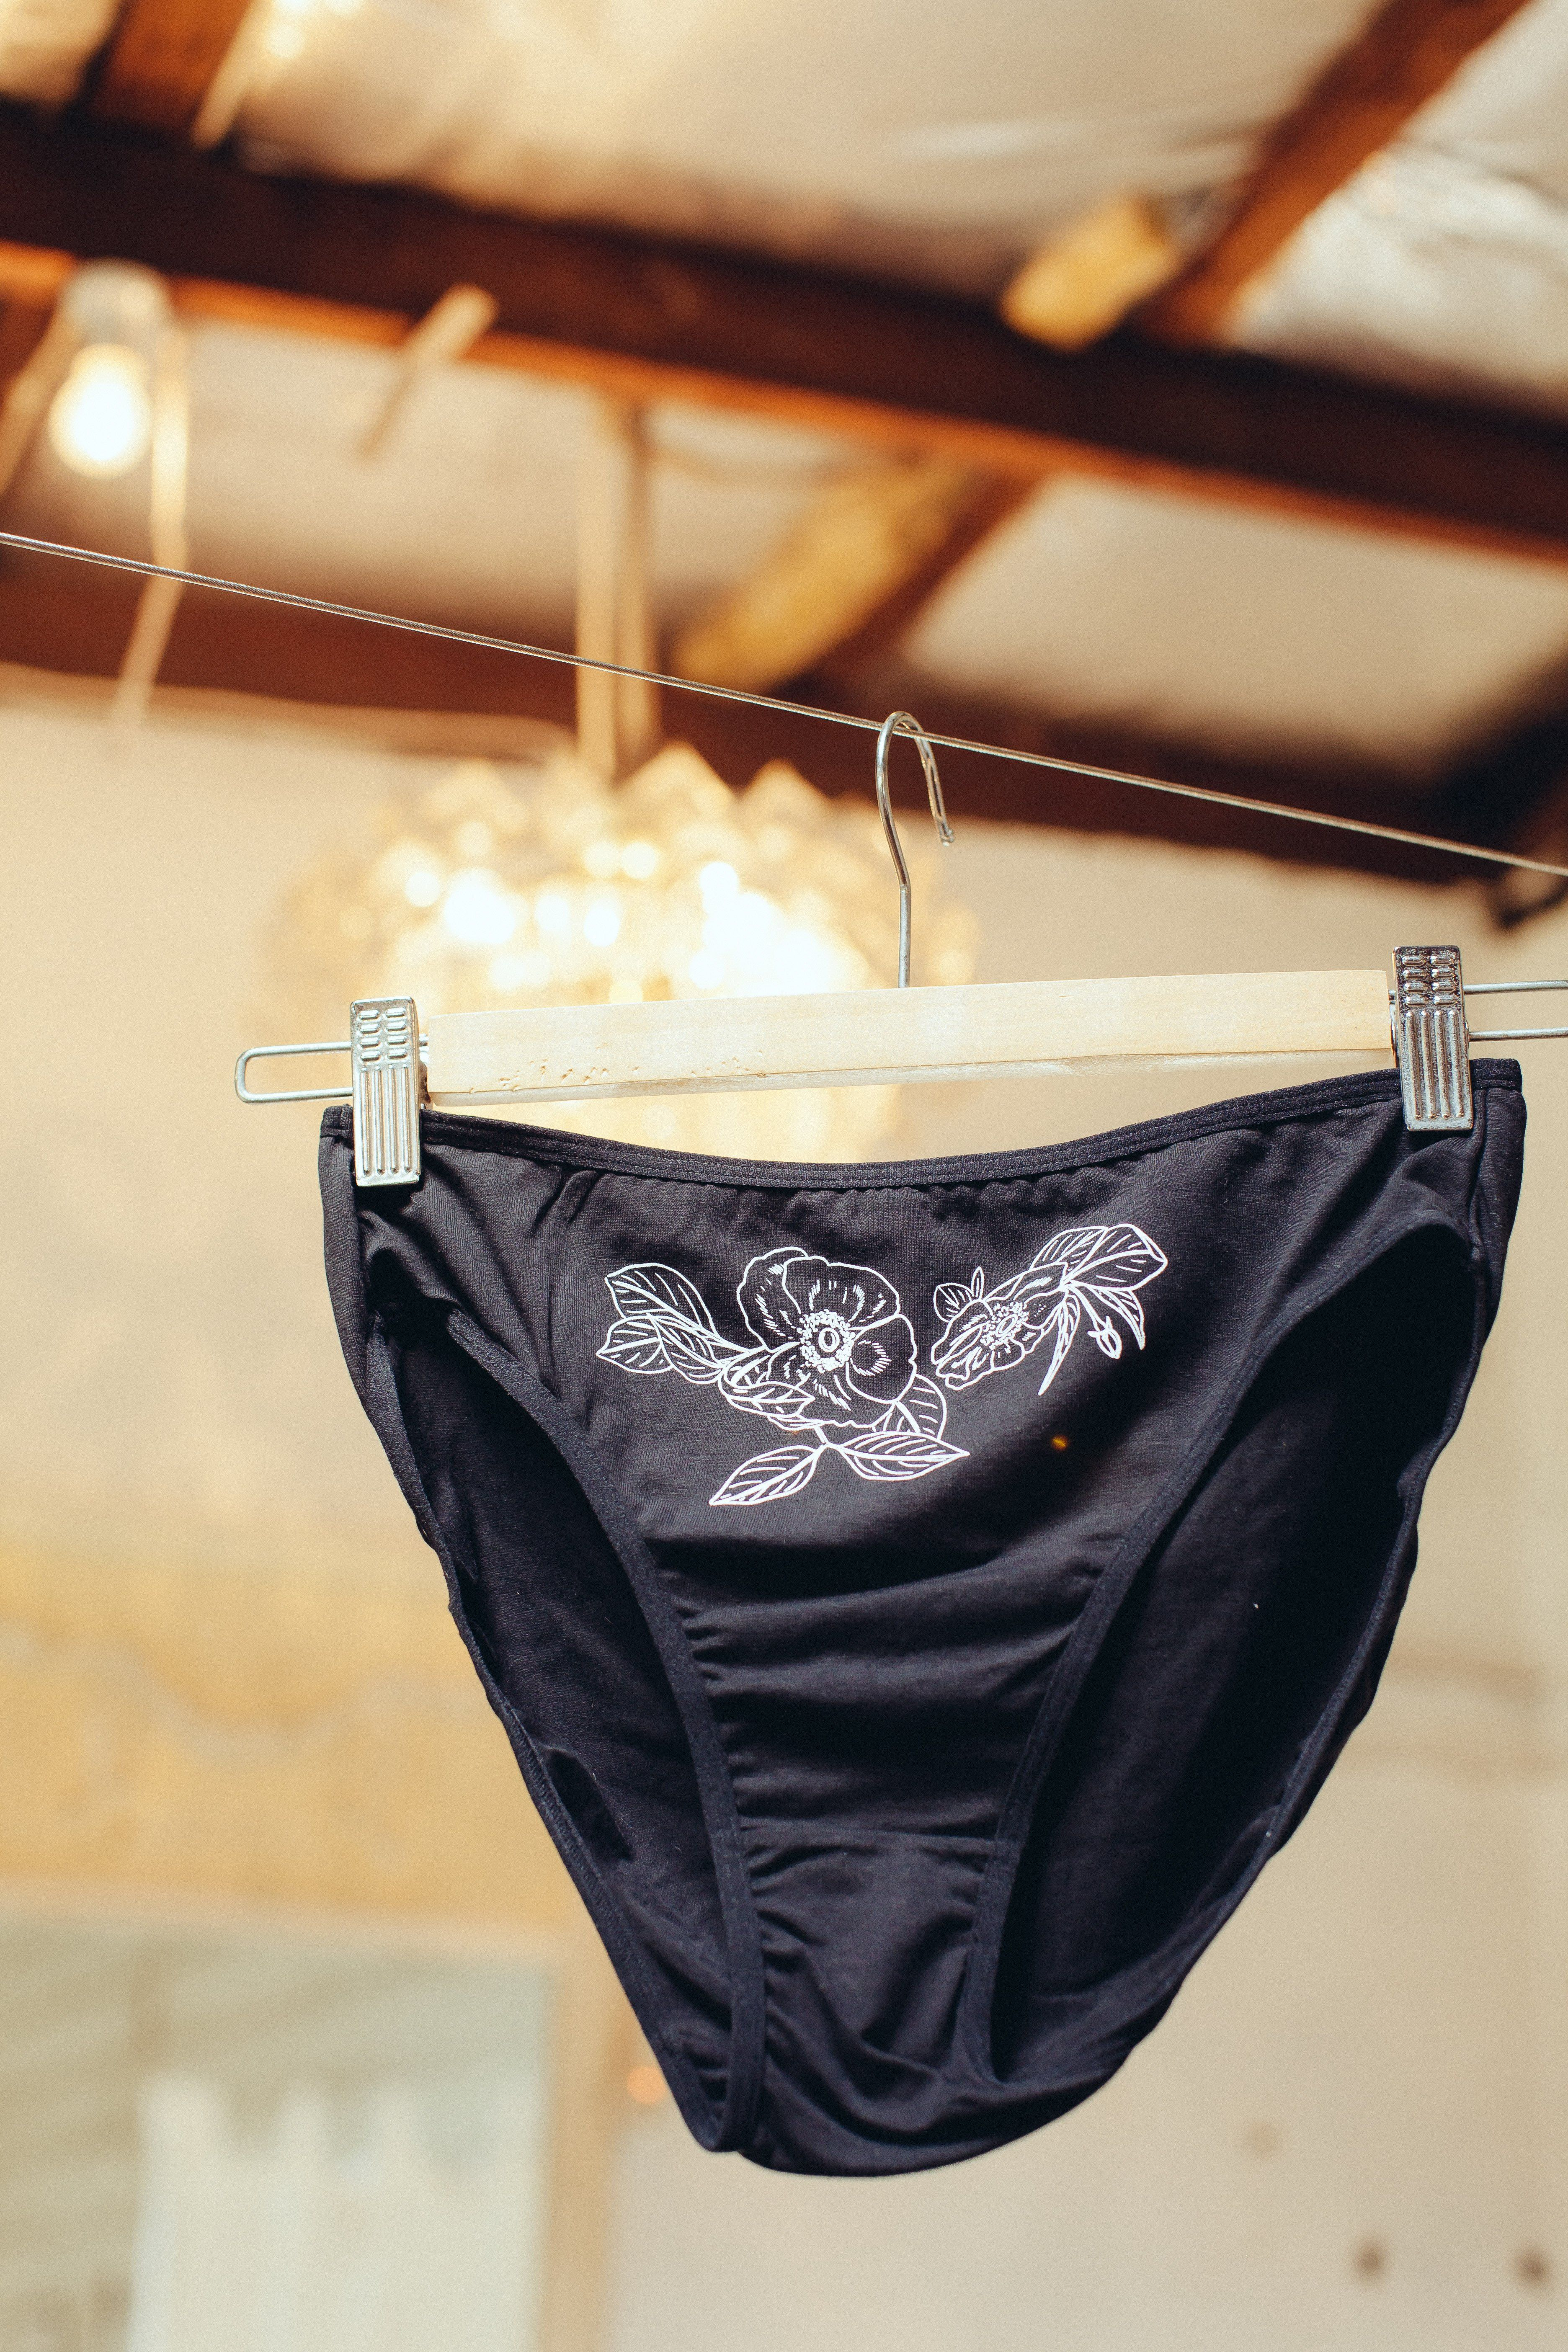 1cce2eba49ac4a High waisted black cotton underwear with white floral print. **Please note  no refunds on underwear**